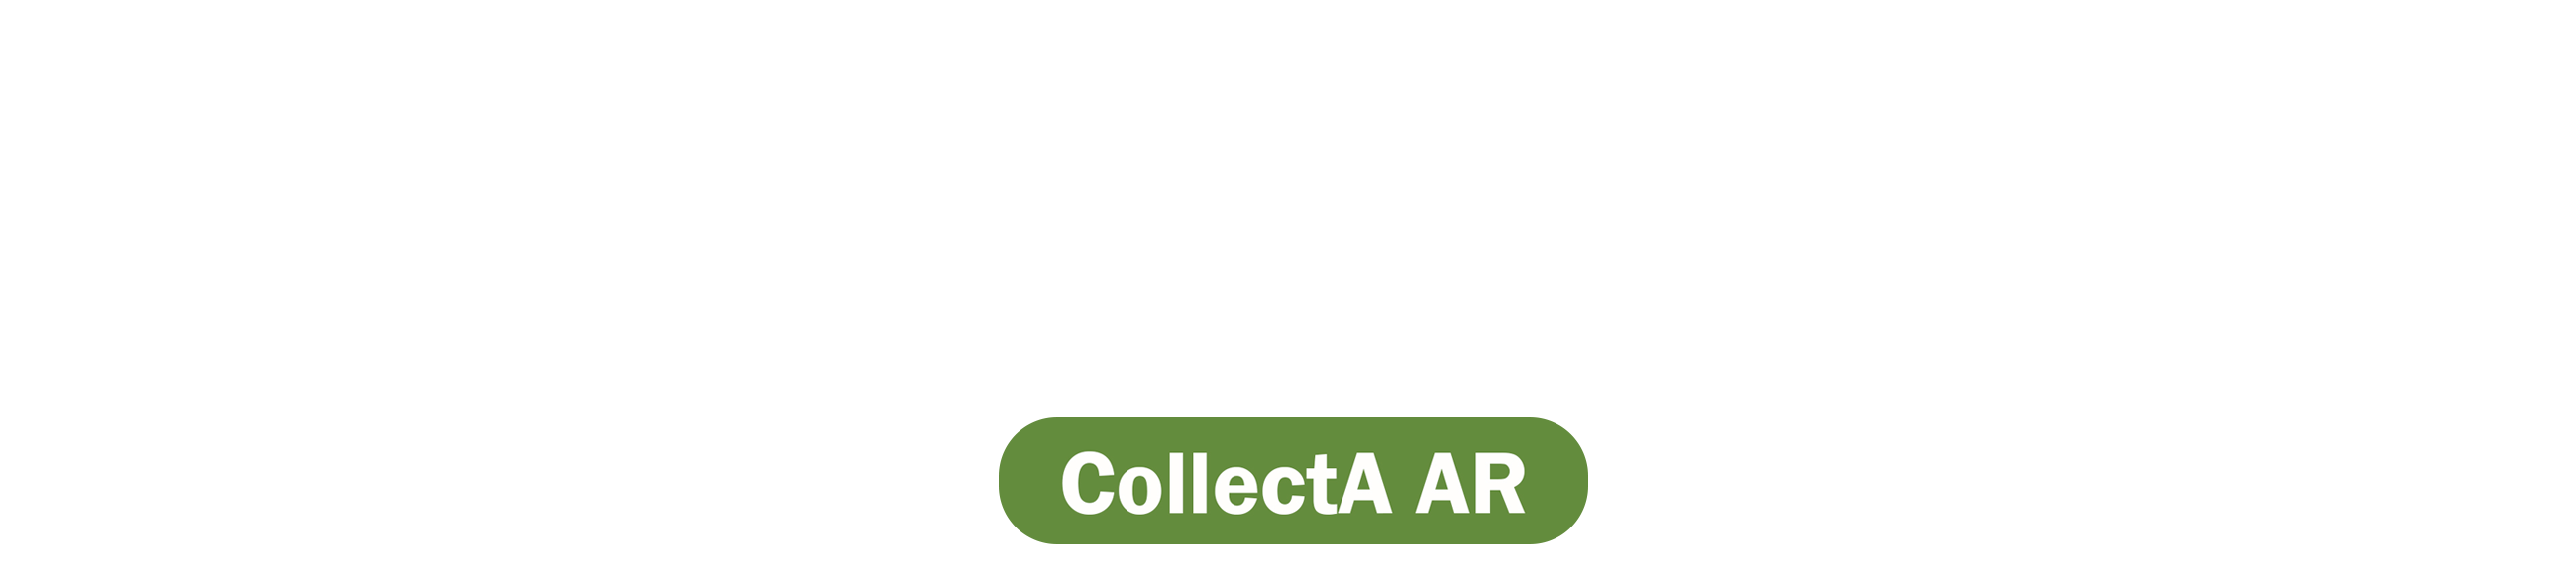 CollectA AR